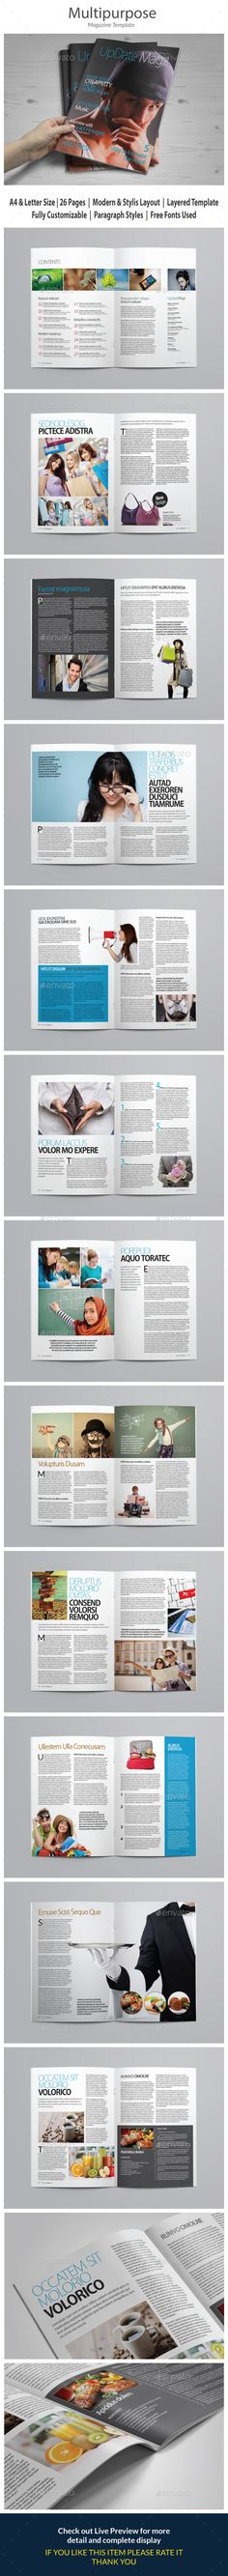 Design Magazine 7 Template by luuqas LIVE PREVIEW Features 40 - it manual templates to download